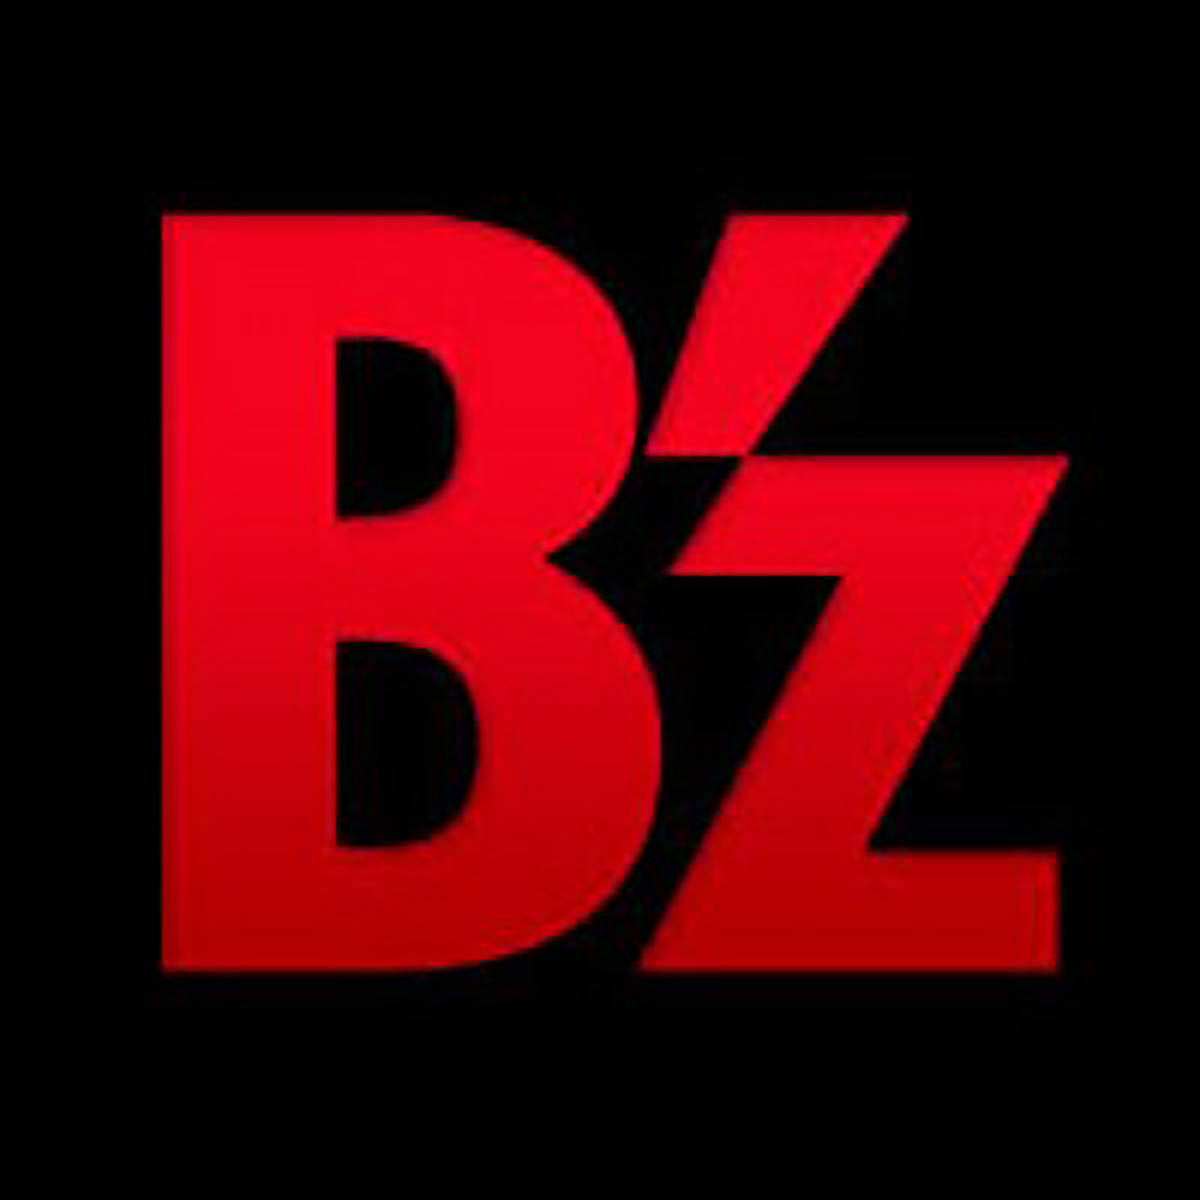 B'z Official Twitterのロゴ